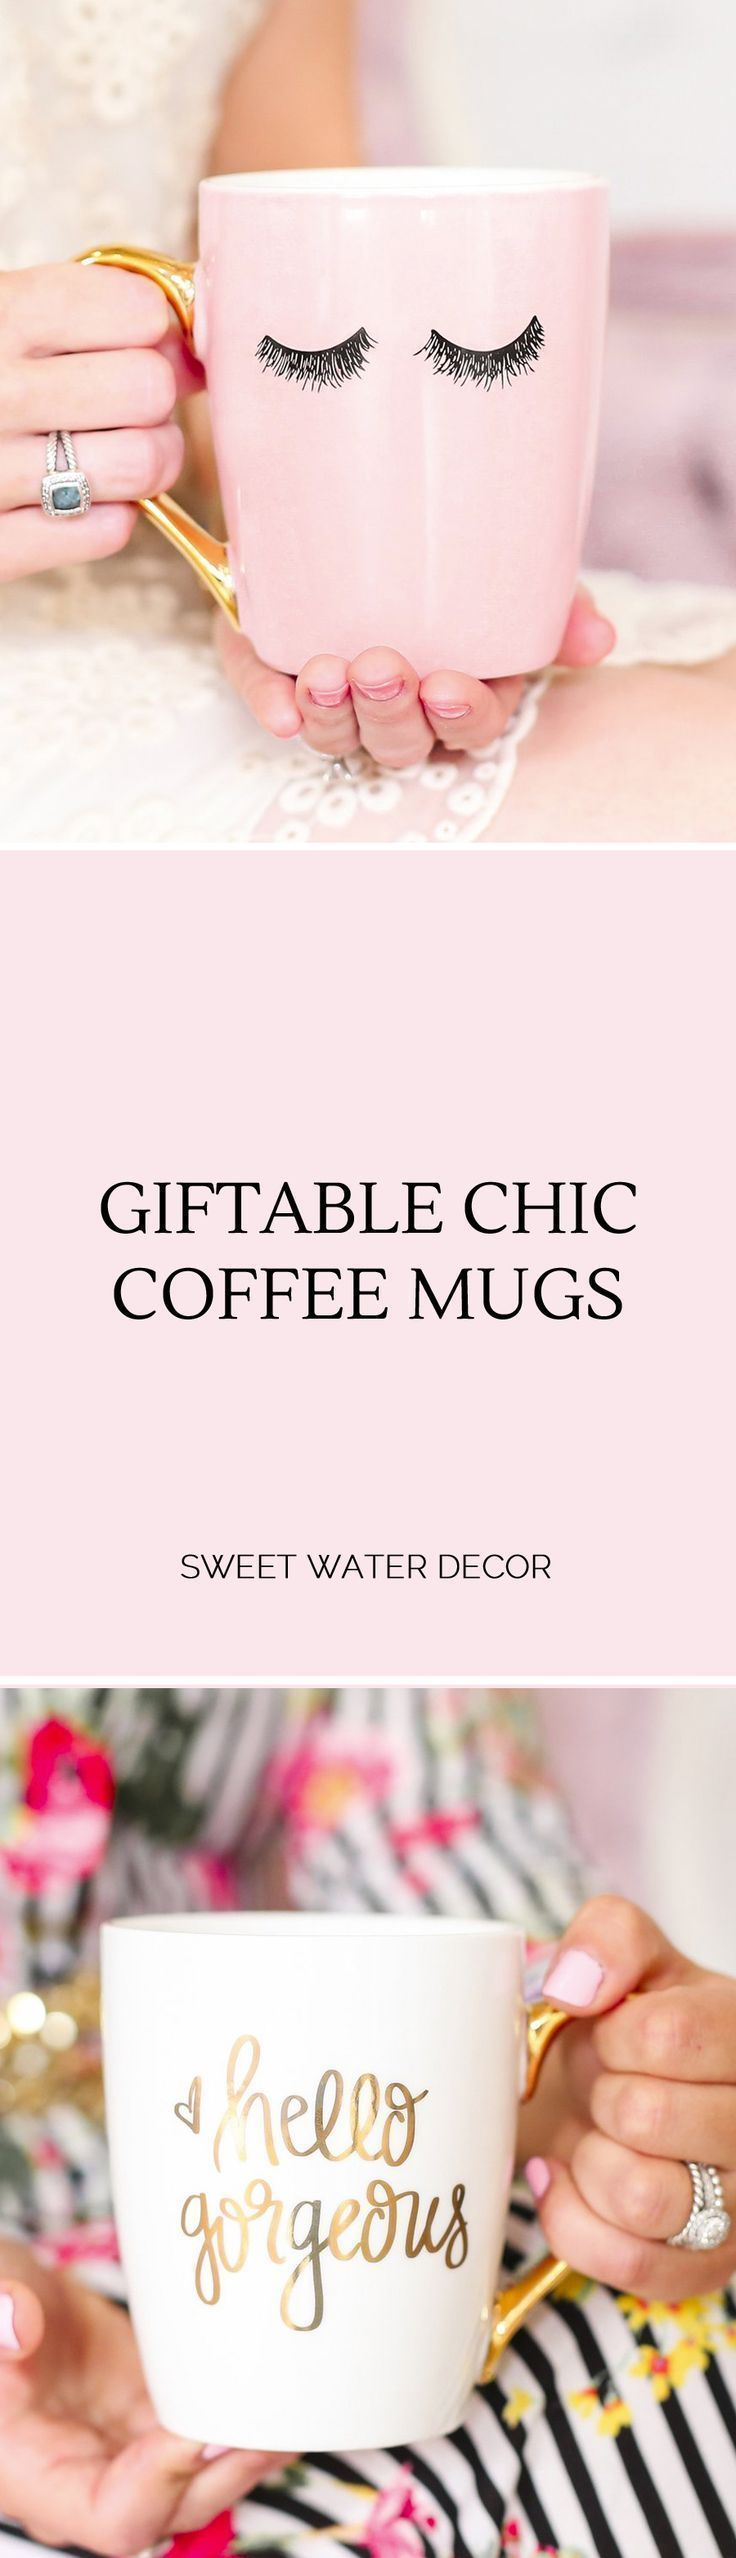 Chic and giftable coffee mugs by Sweet Water Decor